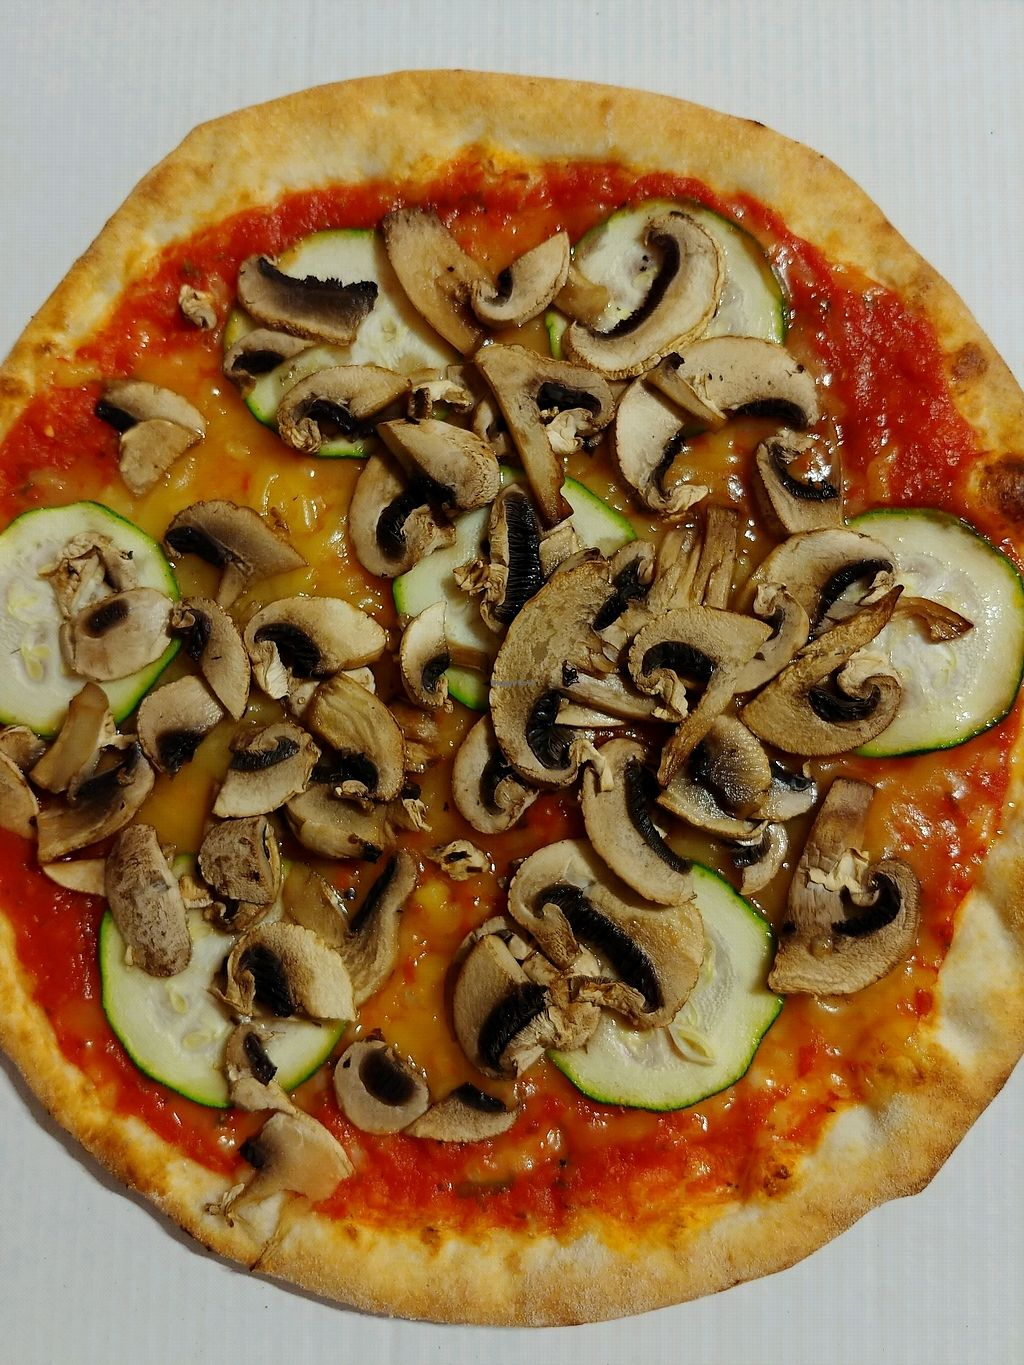 "Photo of Pizzeria Party  by <a href=""/members/profile/AthenaTrombly"">AthenaTrombly</a> <br/>Pizza with mushrooms, zucchini and vegan cheese <br/> March 17, 2018  - <a href='/contact/abuse/image/114758/371855'>Report</a>"